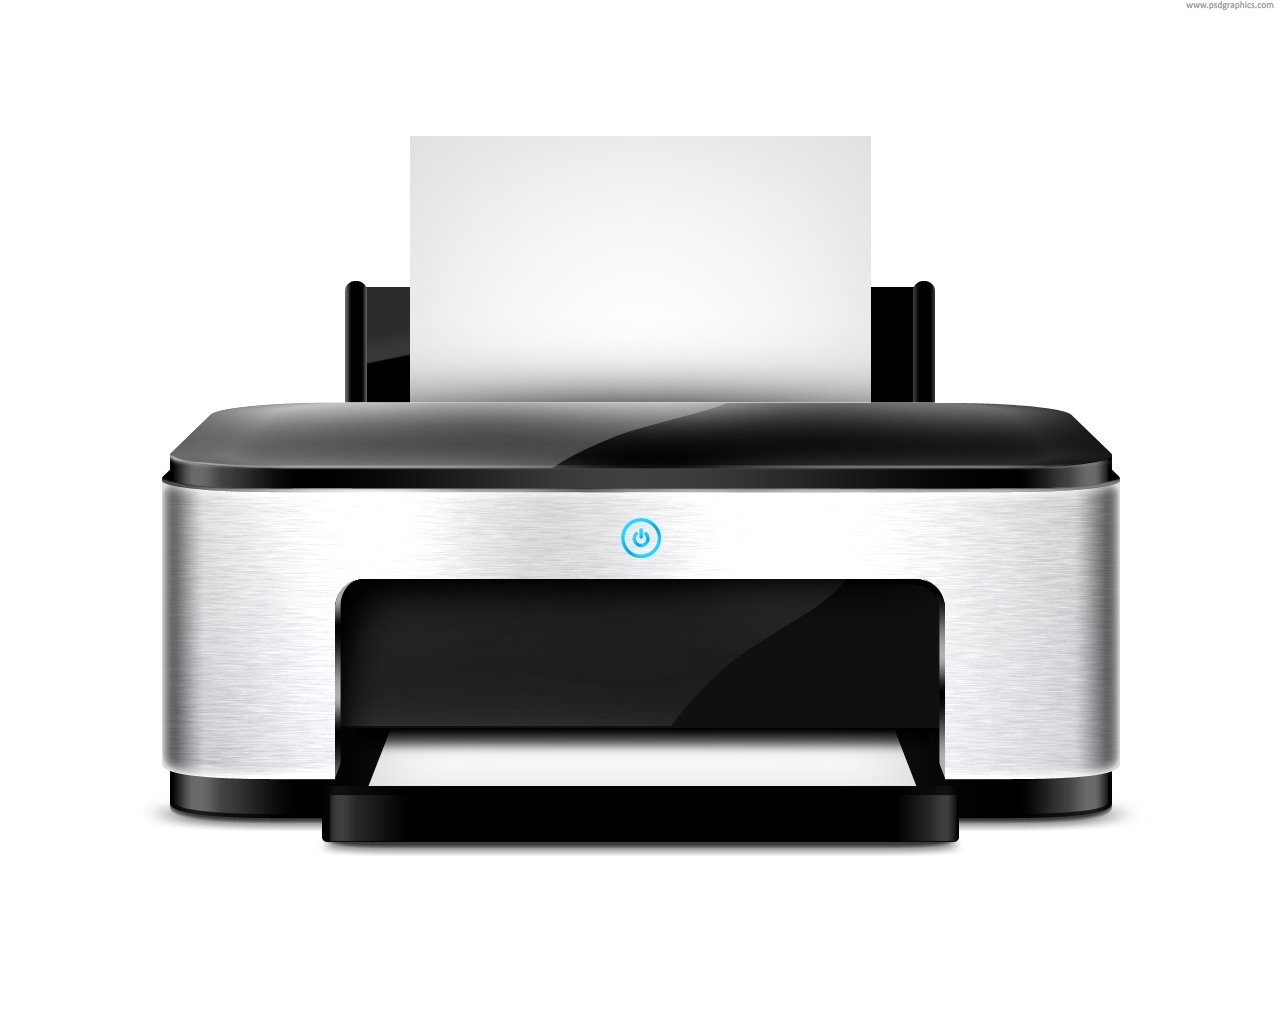 Printer icon (PSD) | PSDGraphics